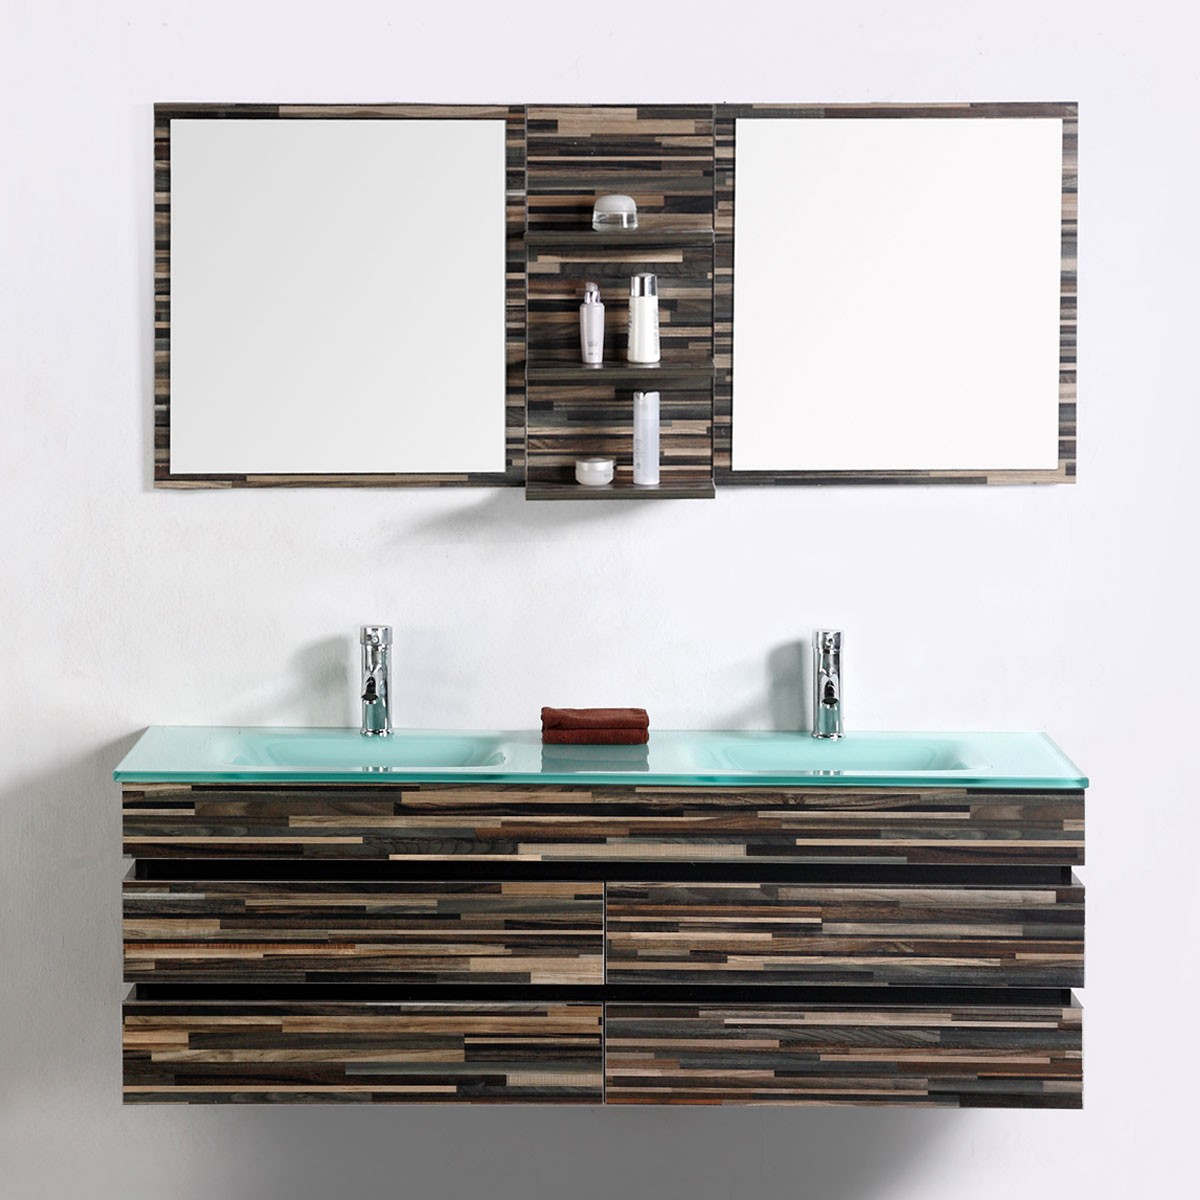 55 In. Wall Mount Bathroom Vanity Set With Double Glass Sink And Mirror (VS